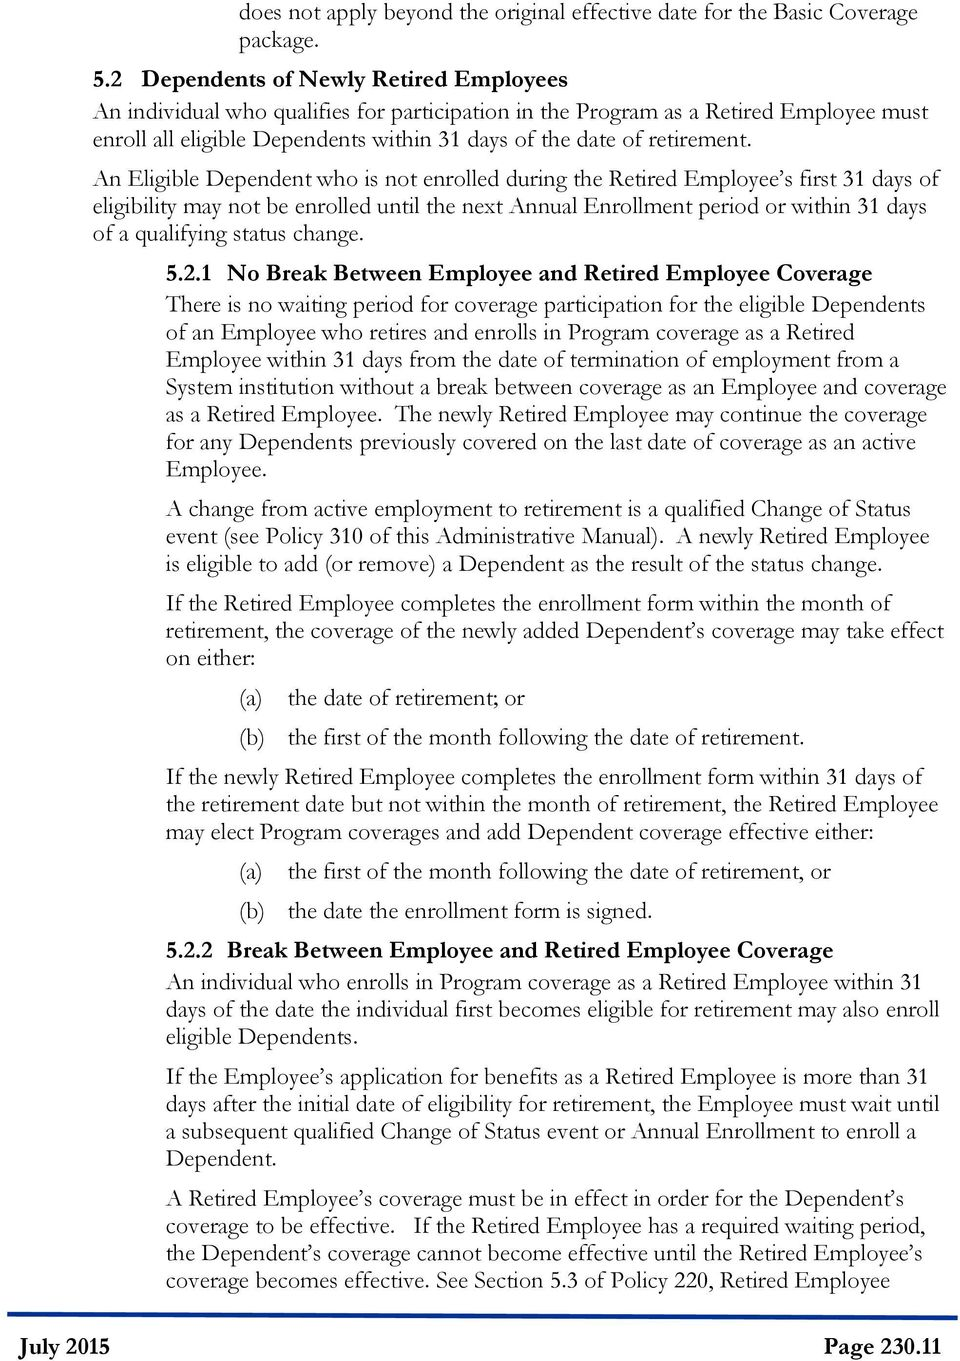 An Eligible Dependent who is not enrolled during the Retired Employee s first 31 days of eligibility may not be enrolled until the next Annual Enrollment period or within 31 days of a qualifying